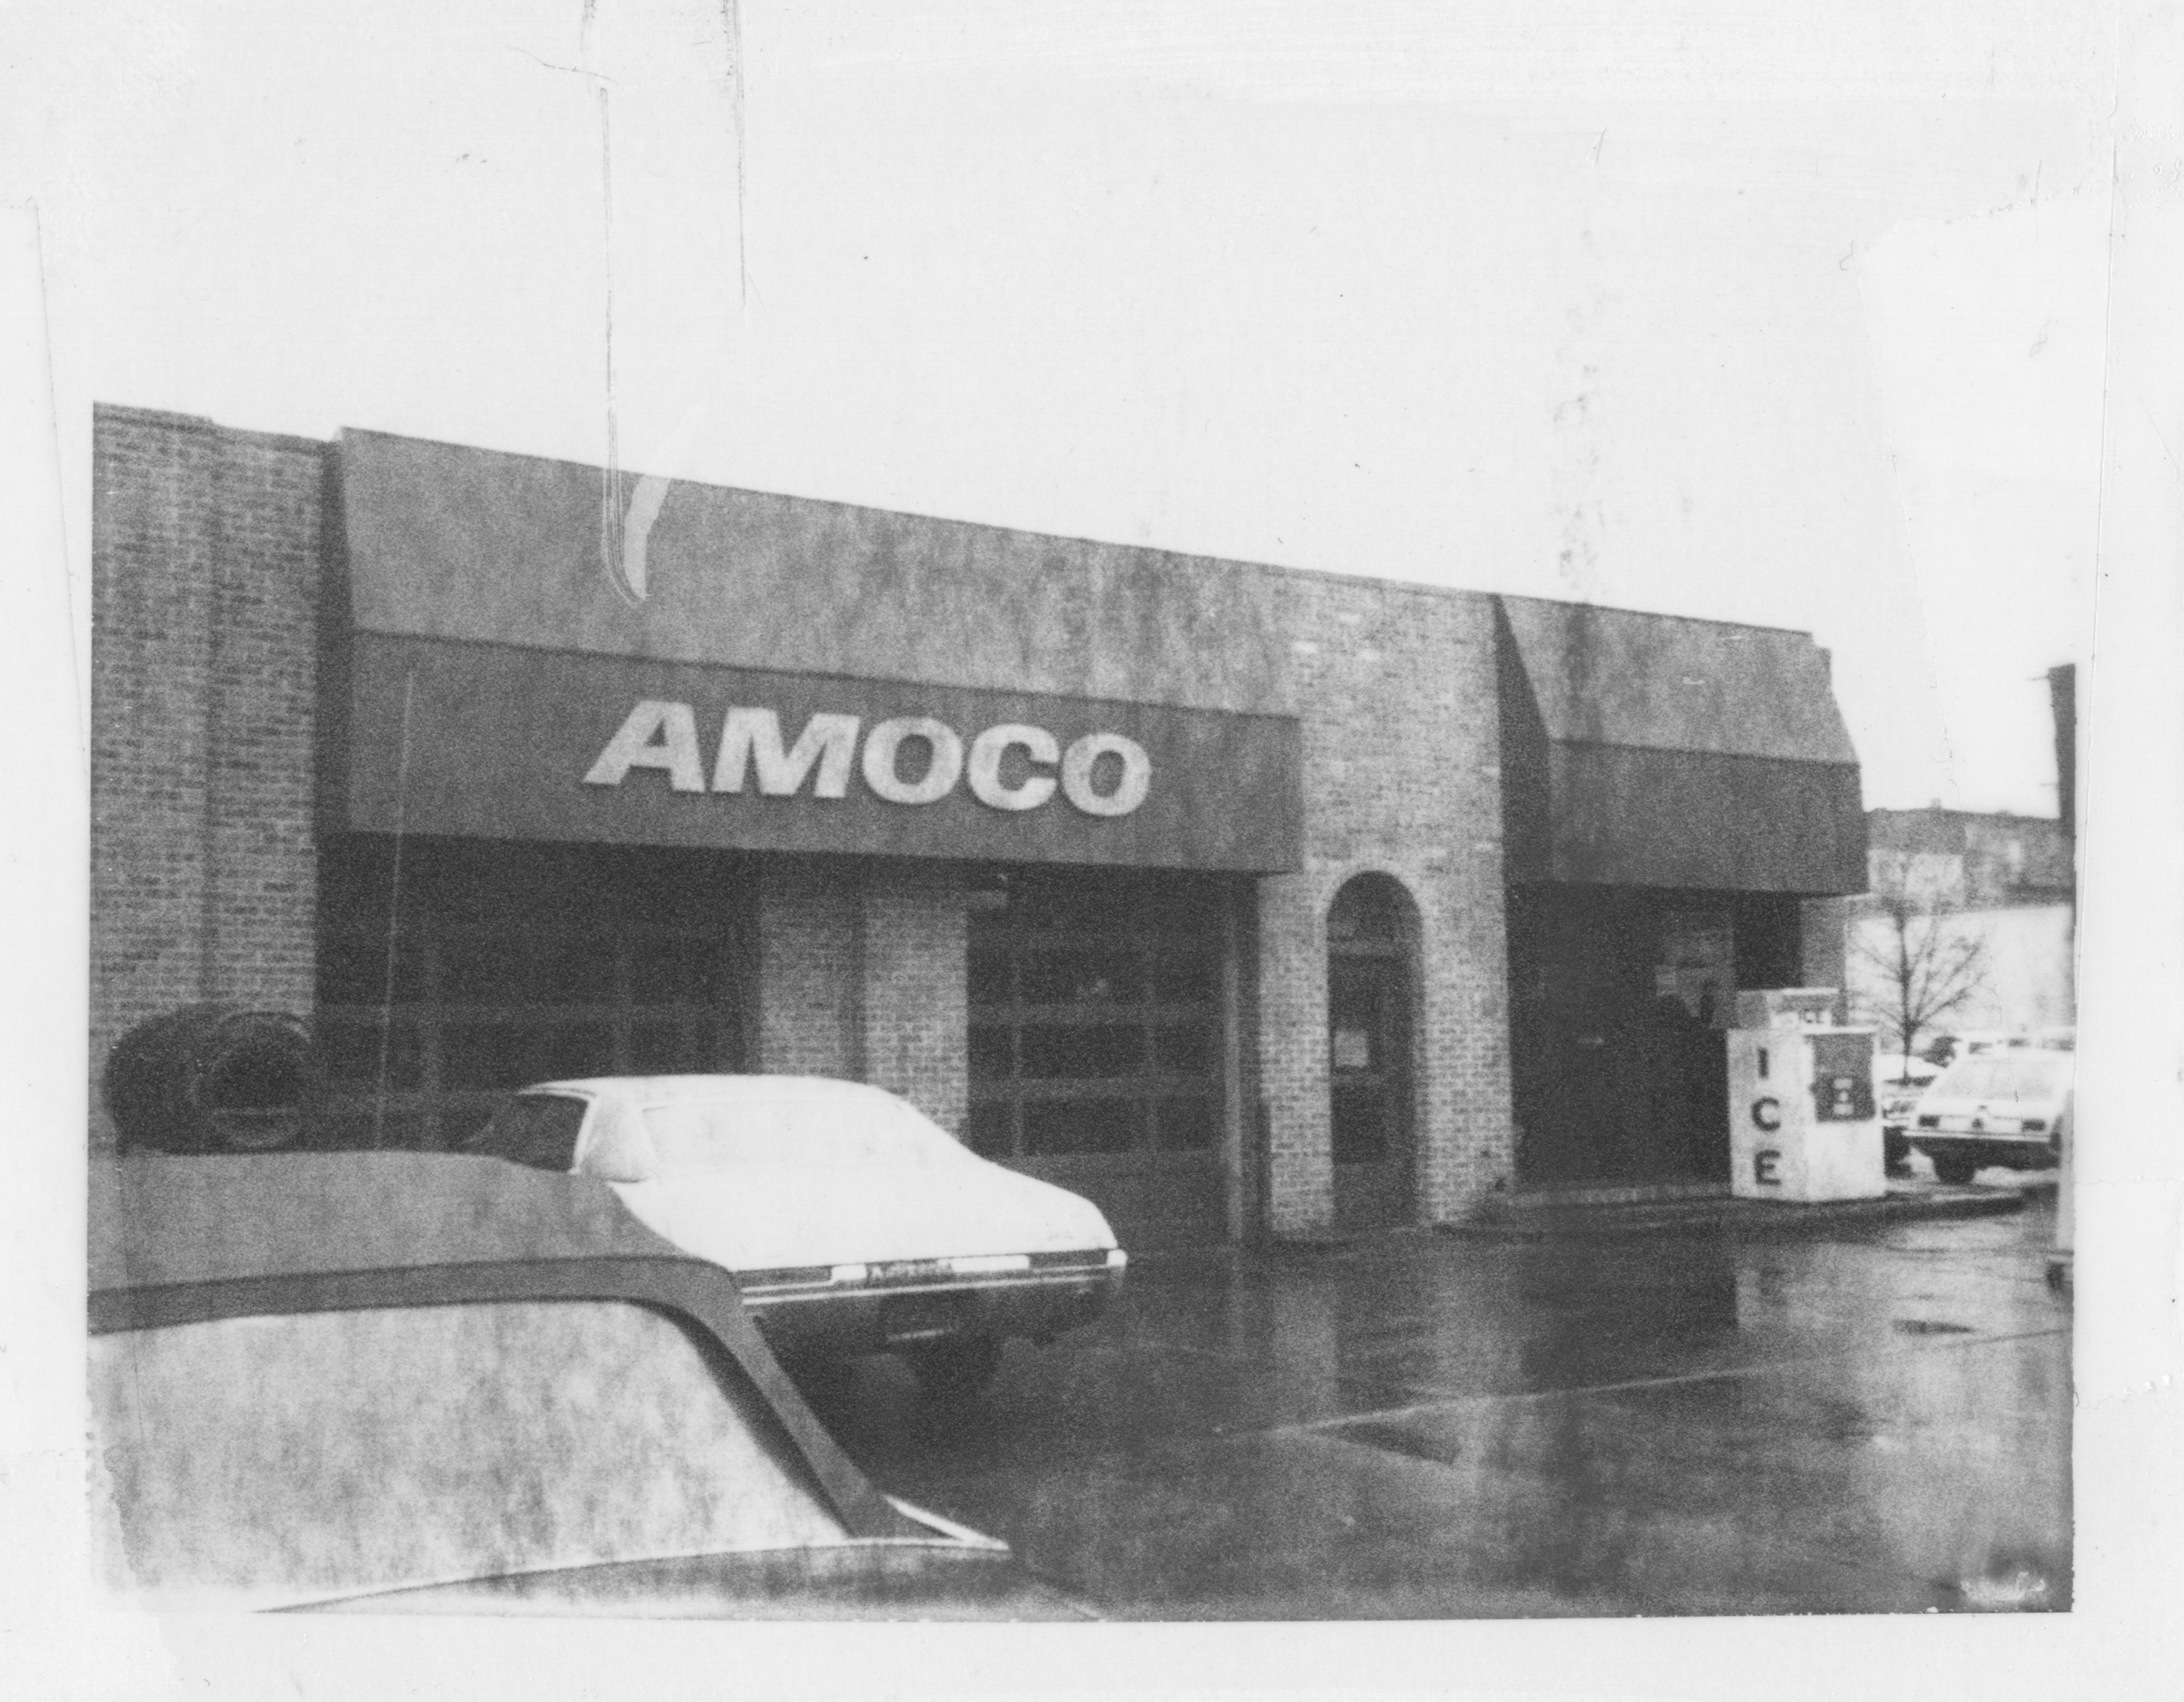 Amoco, North Main Stardard Oil, 1975 image